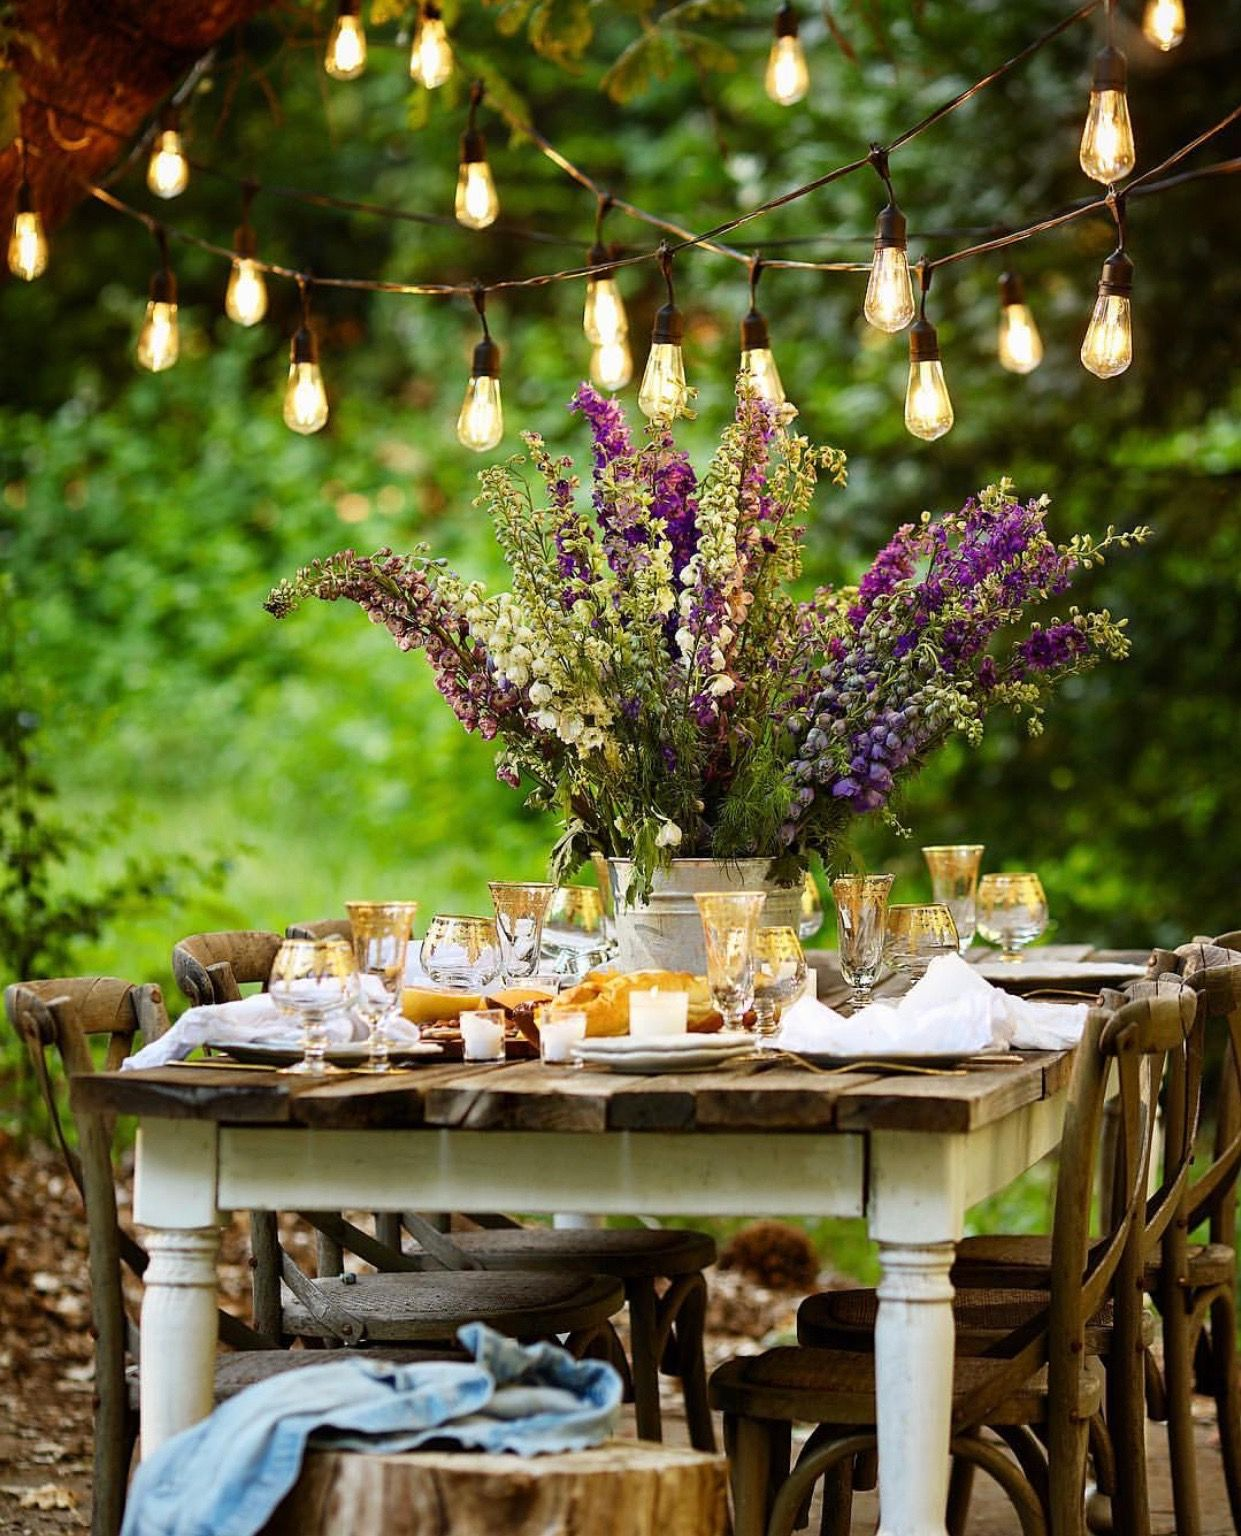 8 CHARMING OUTDOOR PARTY DECORATION IDEAS   Backyard party ...